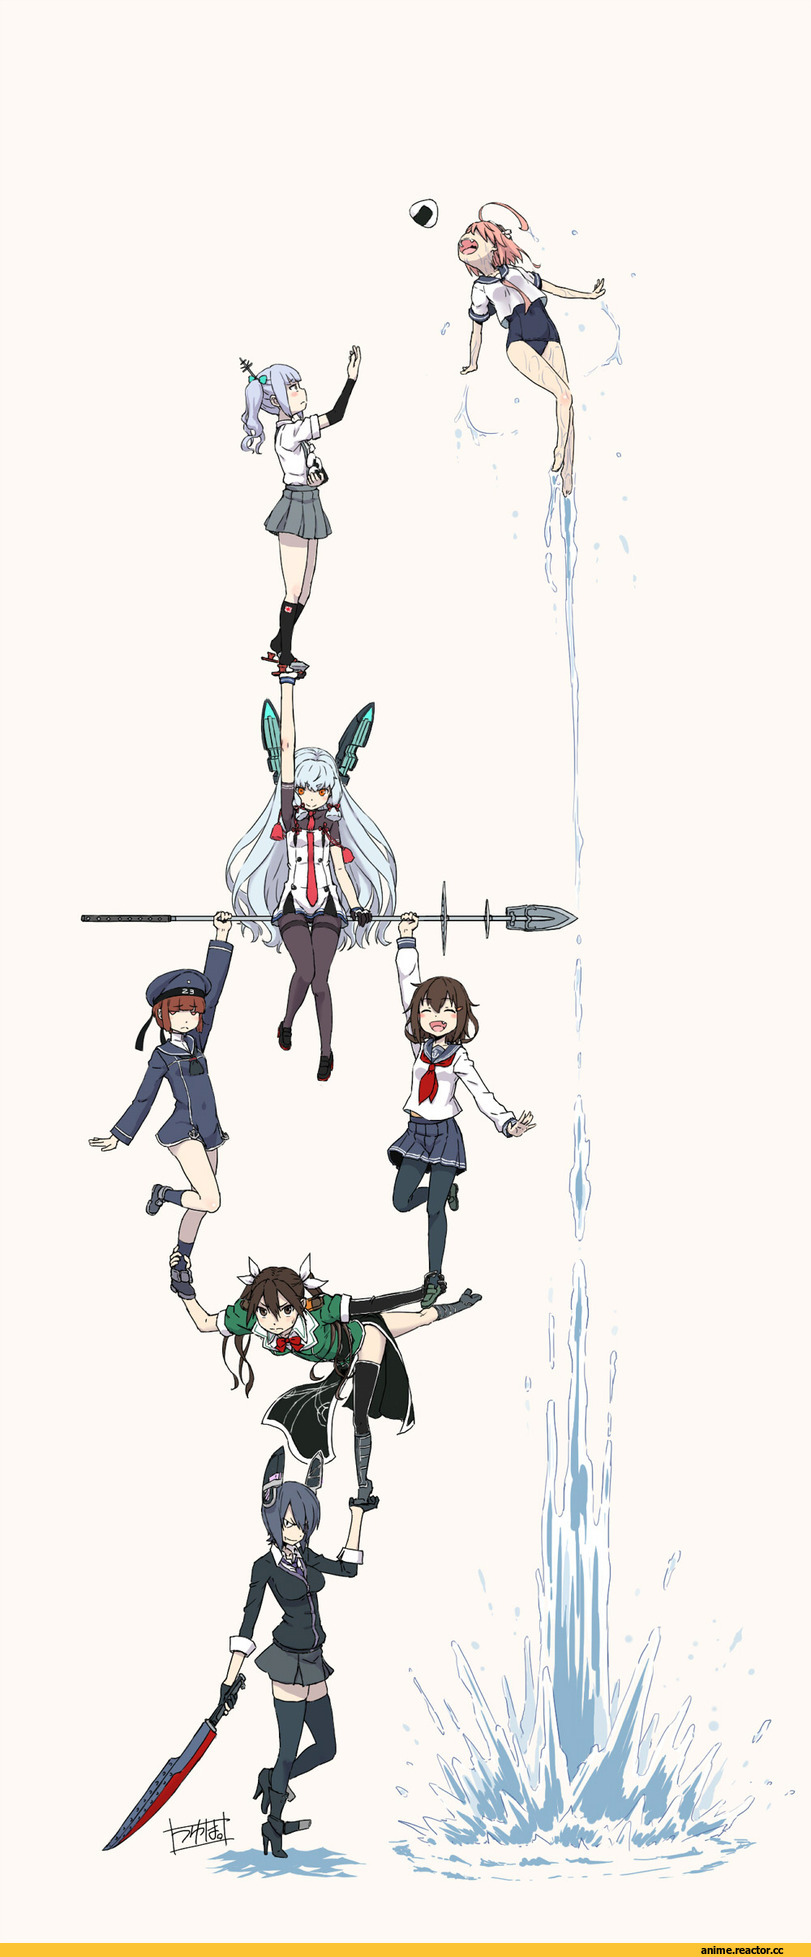 i-58 (kantai collection), Kantai Collection, Ikazuchi, Kasumi (Kantai Collection), Murakumo, Tone (Kantai Collection), Z3 Max Schultz (Kantai Collection), Tenryuu, minazuki tsuyuha, Anime